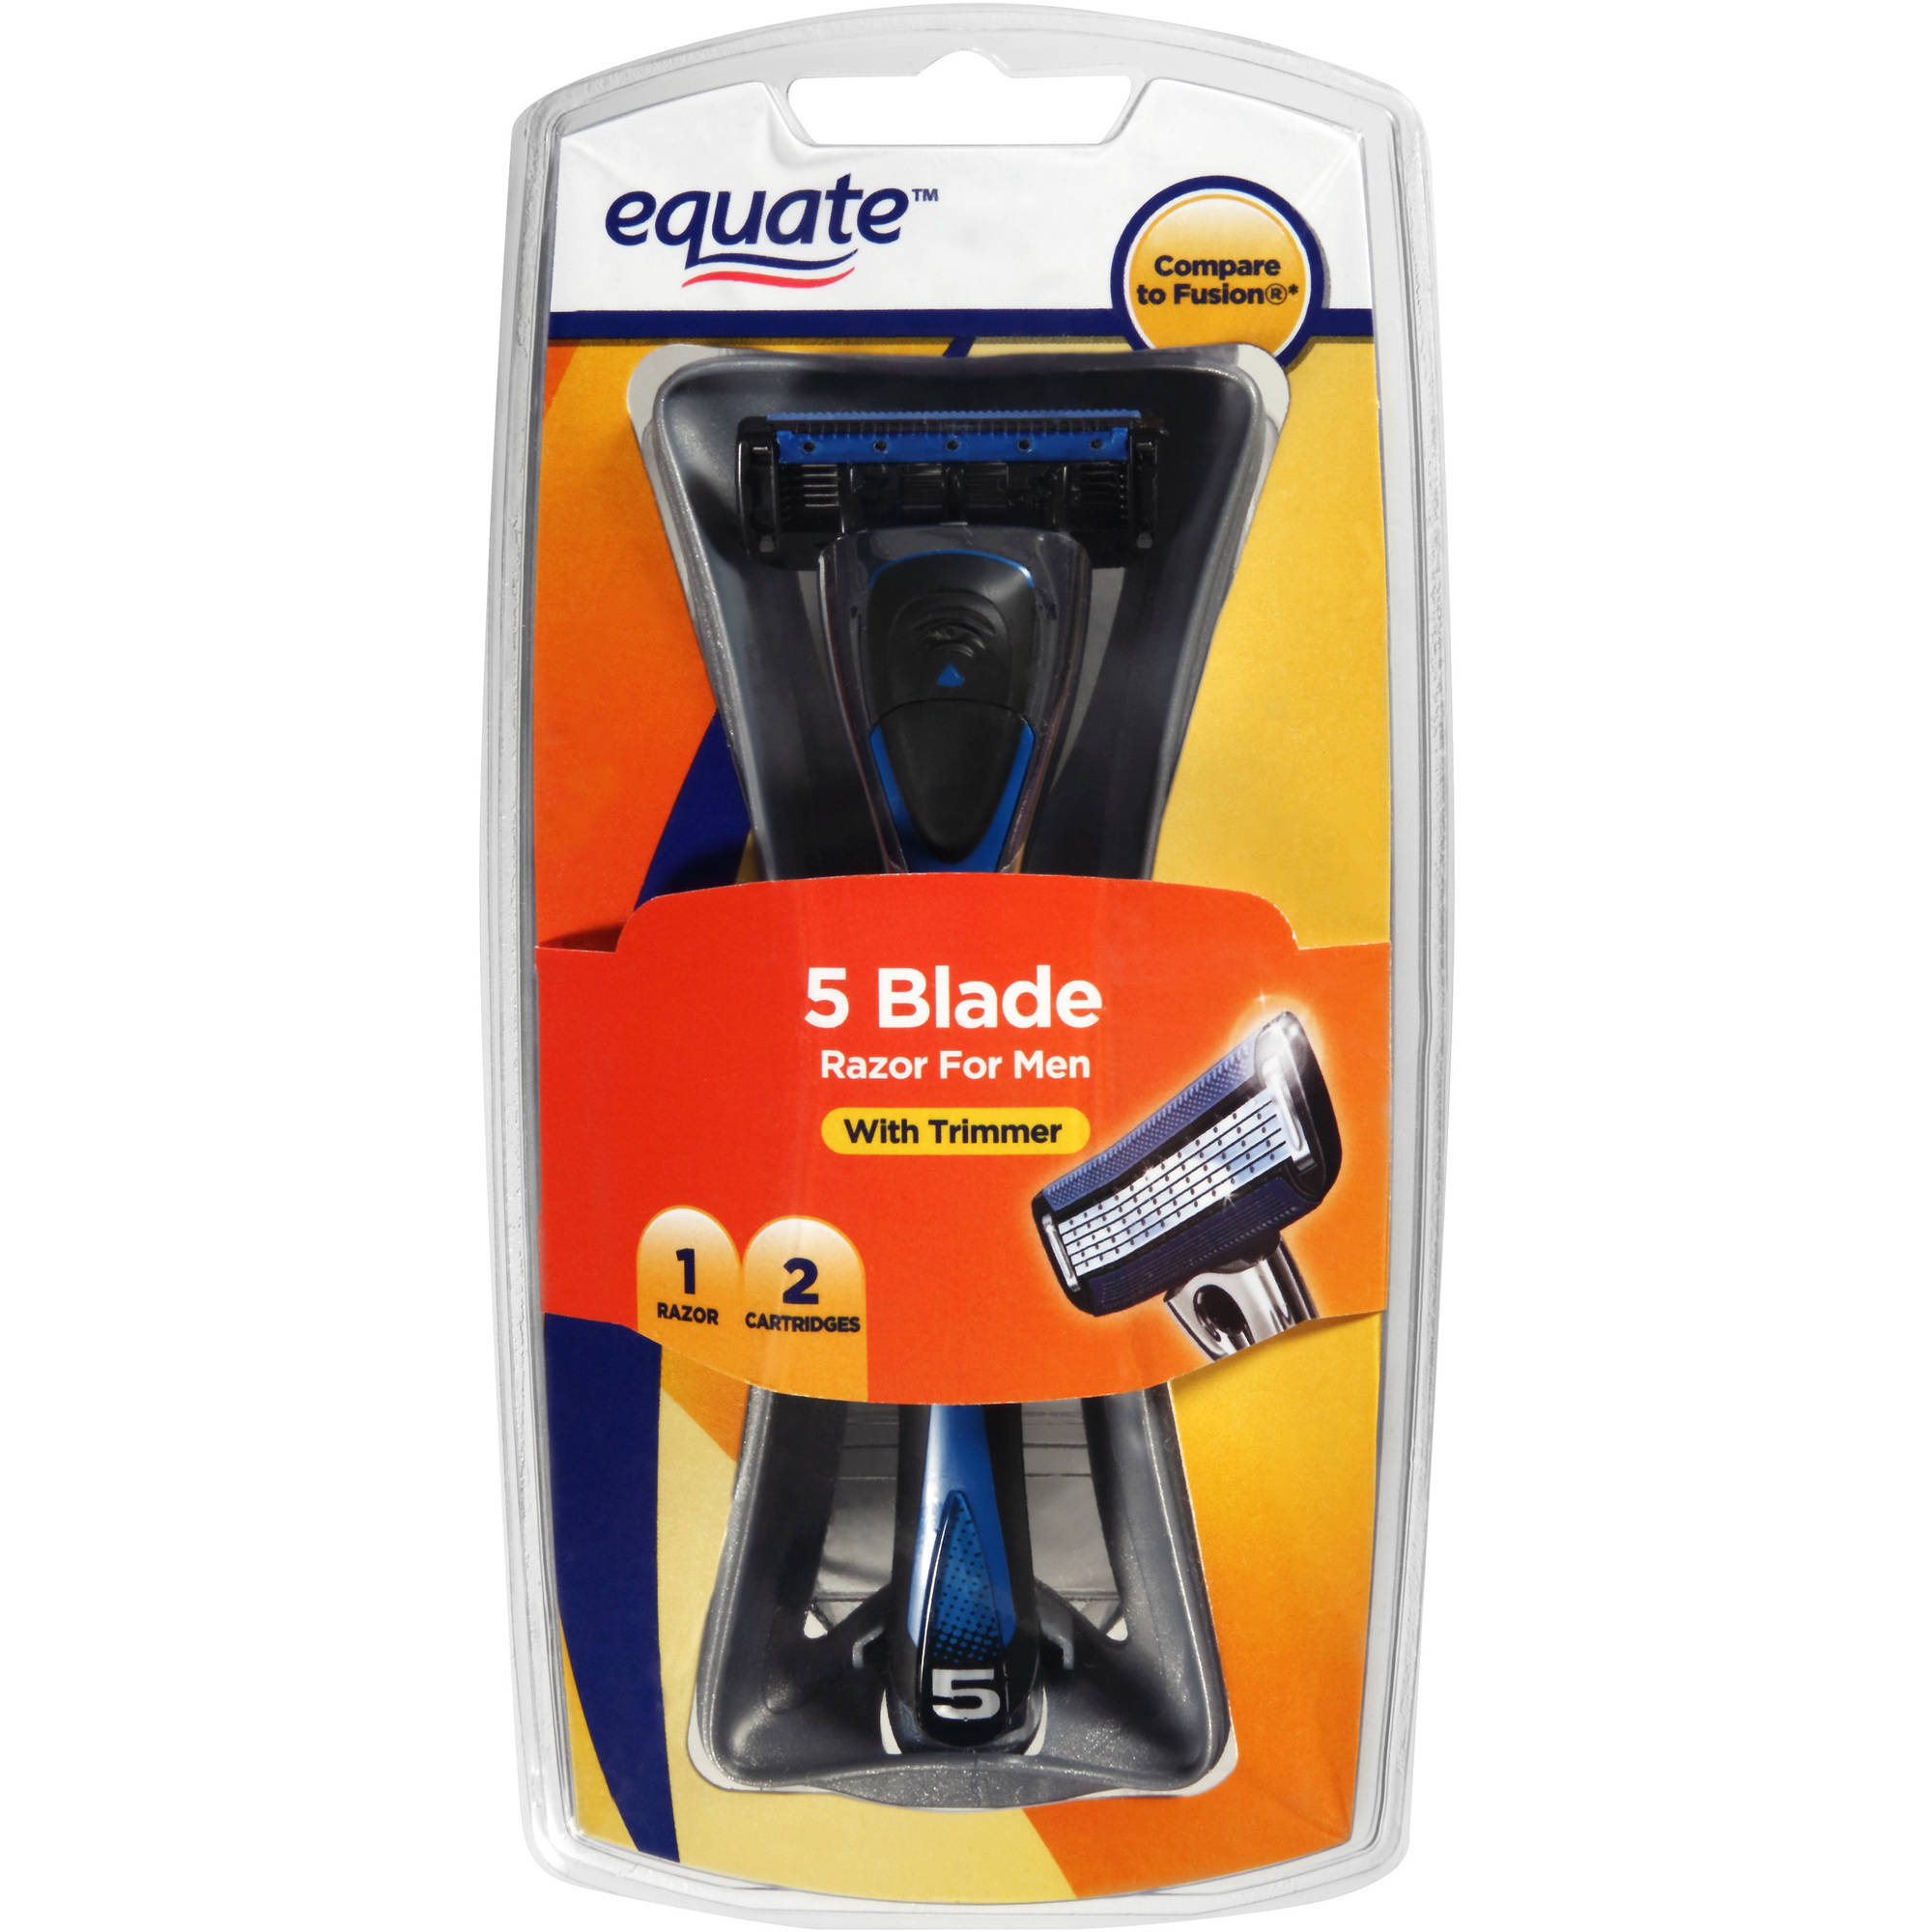 Equate 5 Blade Razor for Men with Trimmer, 3 pc